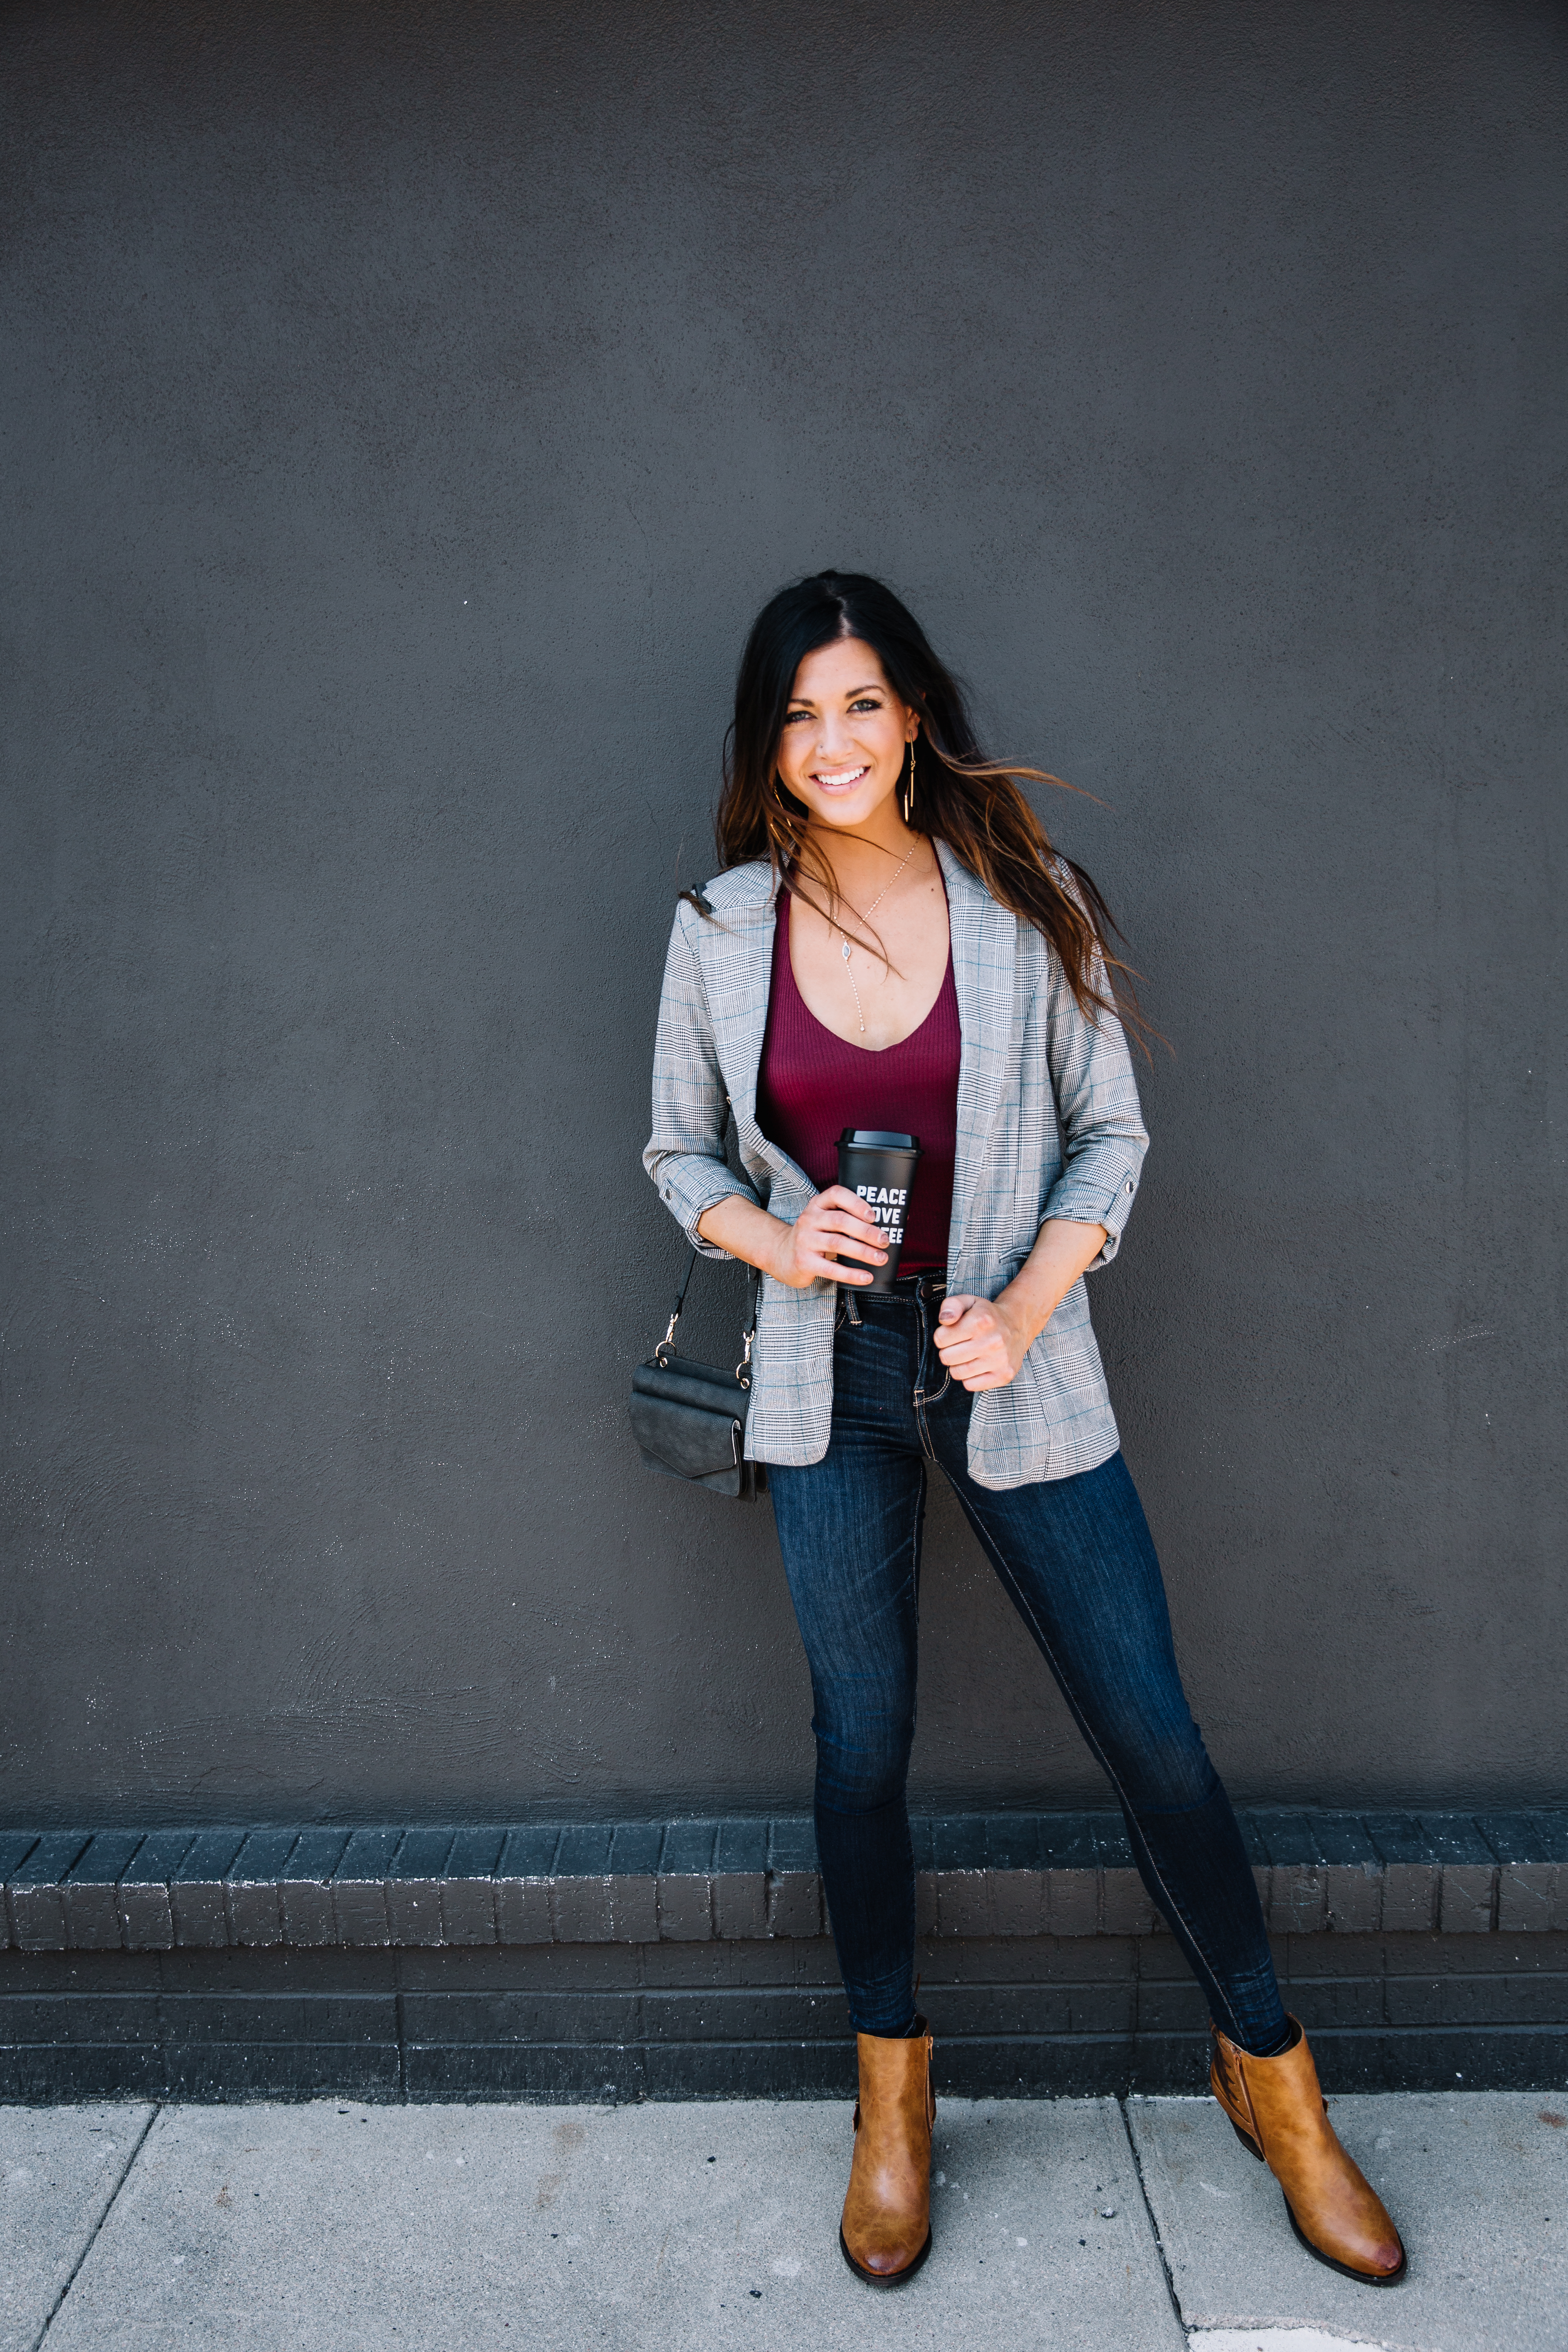 Women's Smart Casual Outfit - Blazer, Clean Denim, and Booties from Buckle